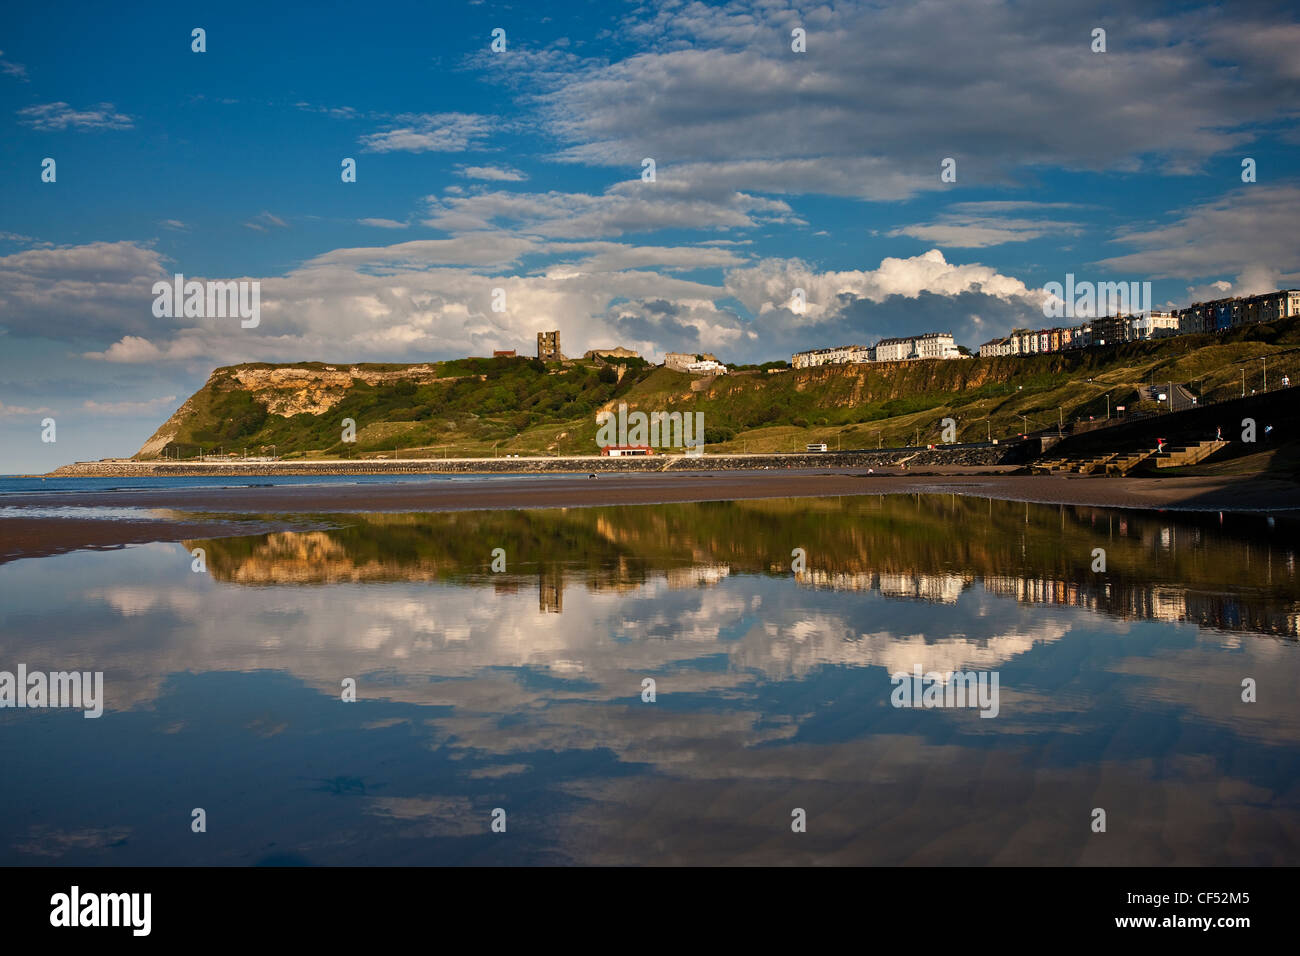 Scarborough Castle on a promontory overlooking North Bay. - Stock Image